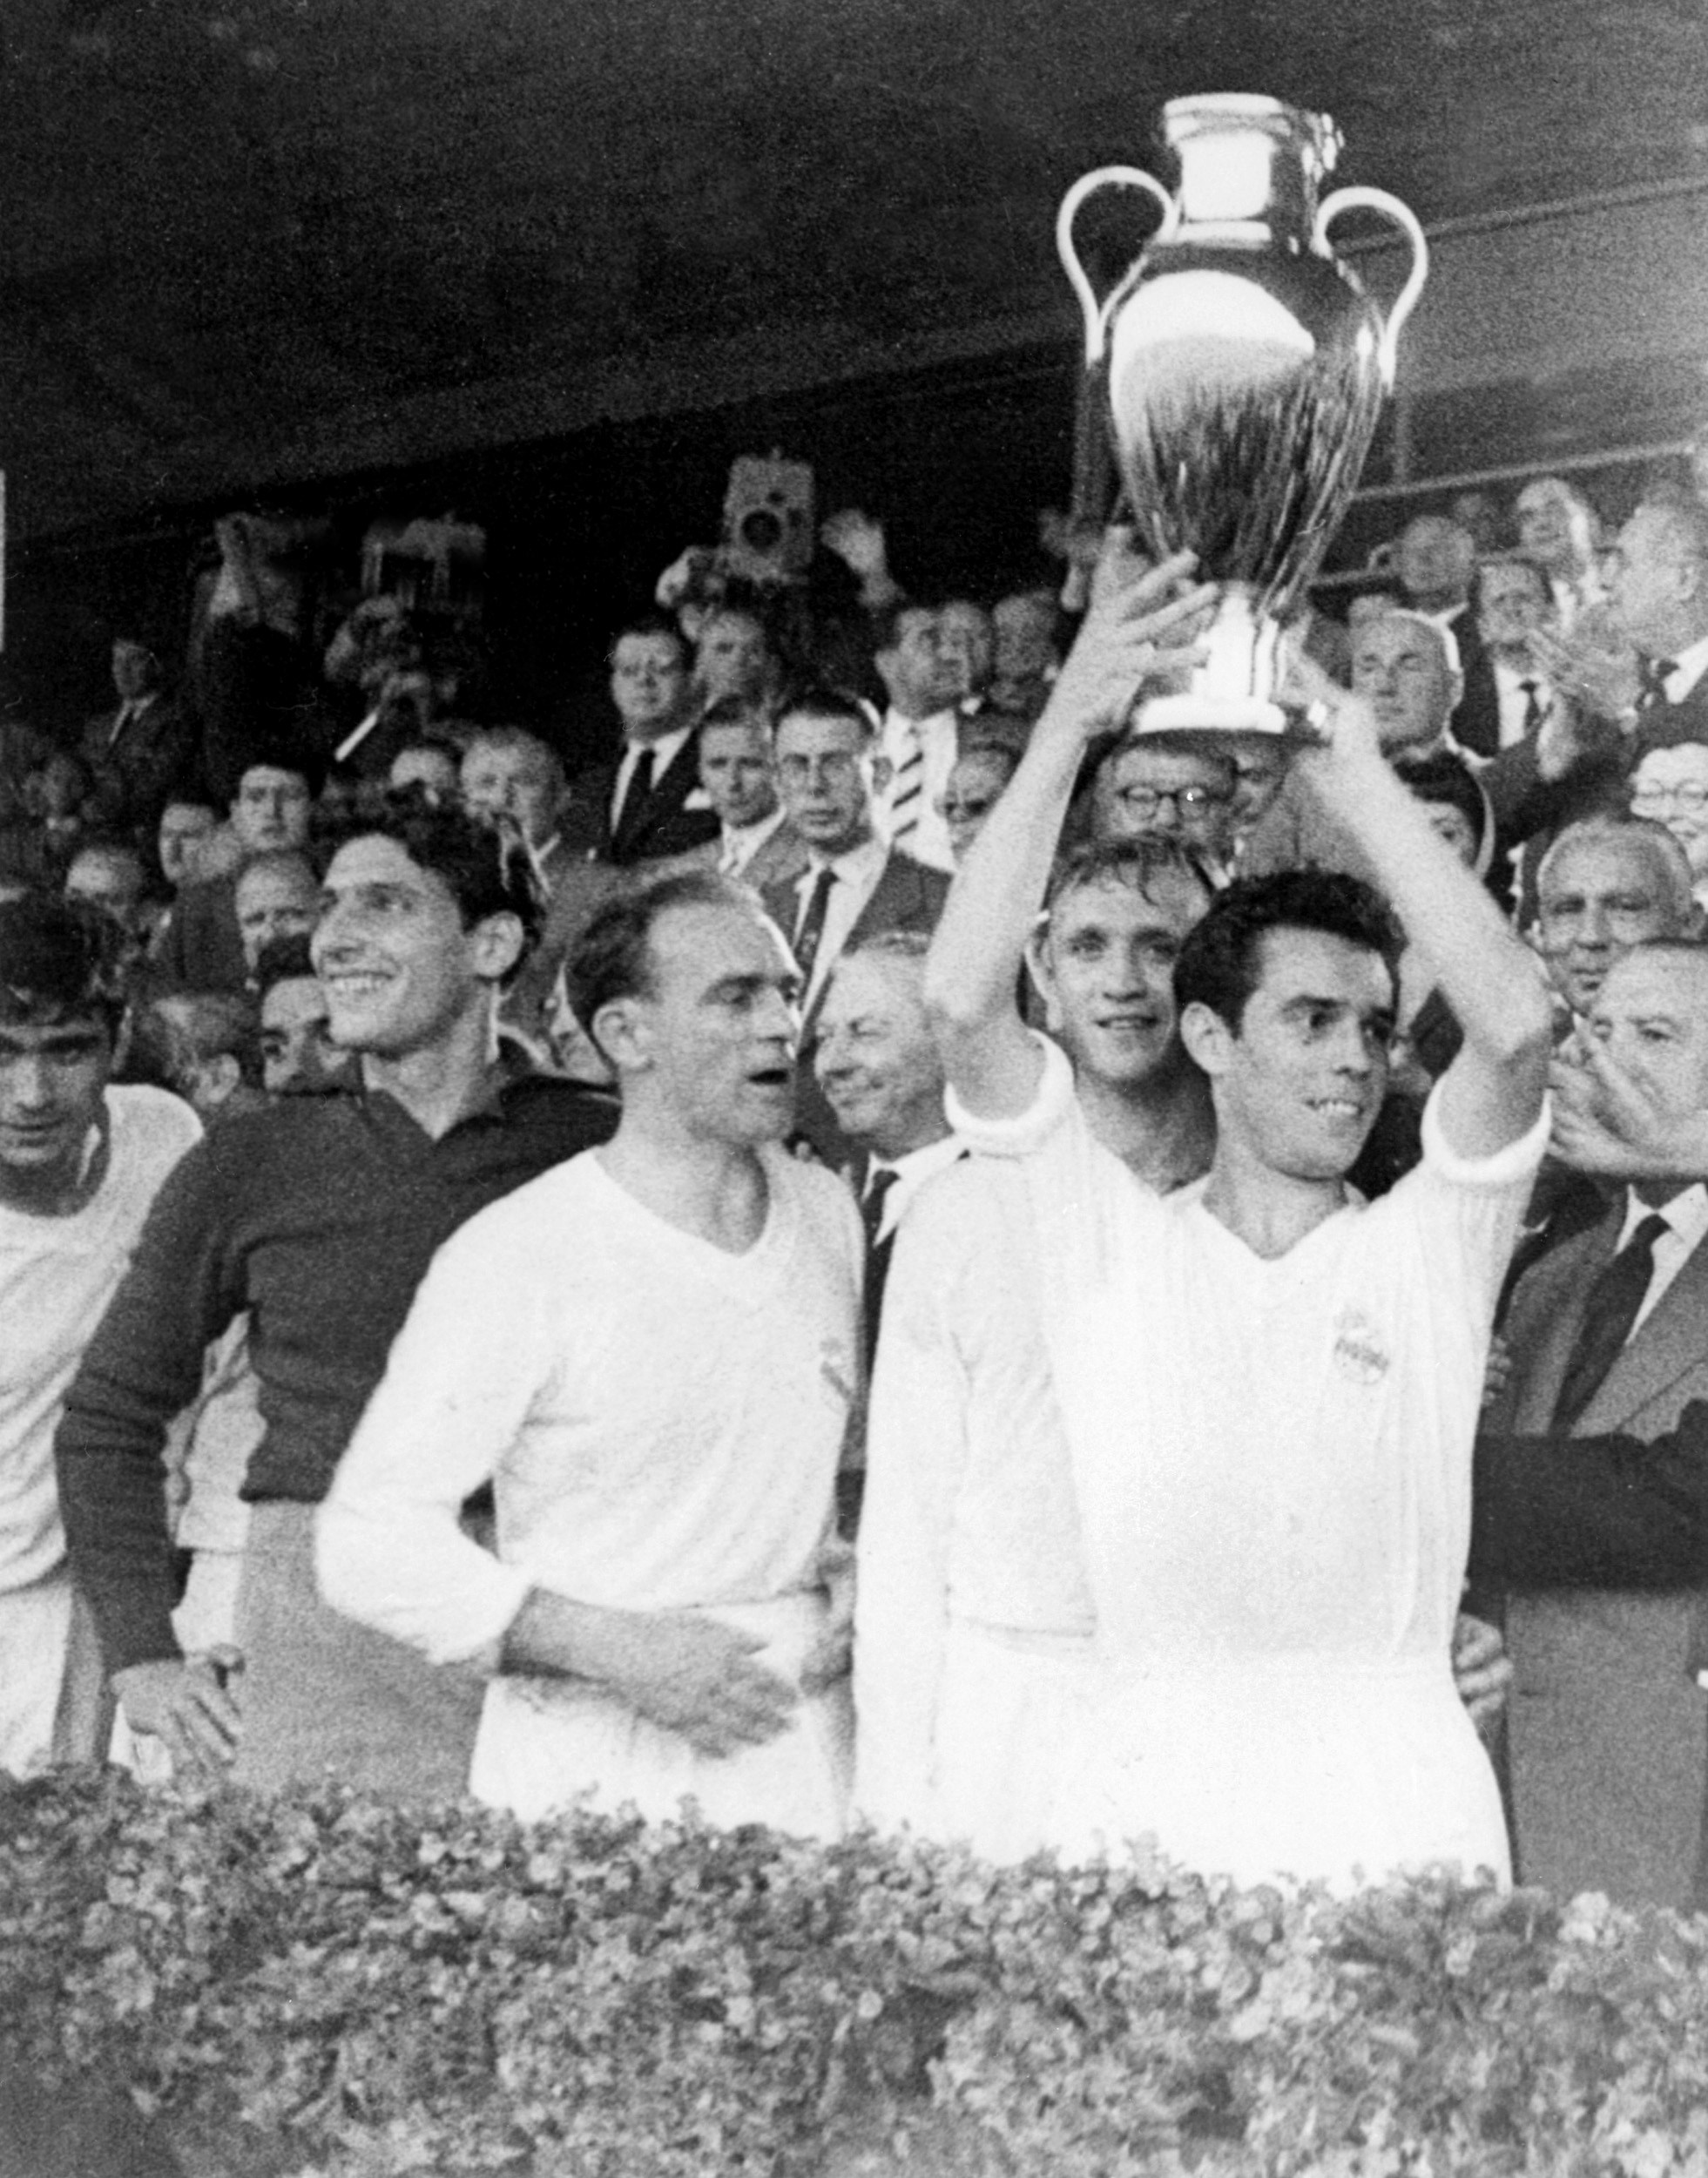 SOCCER-EUROPEAN CUP-REAL MADRID